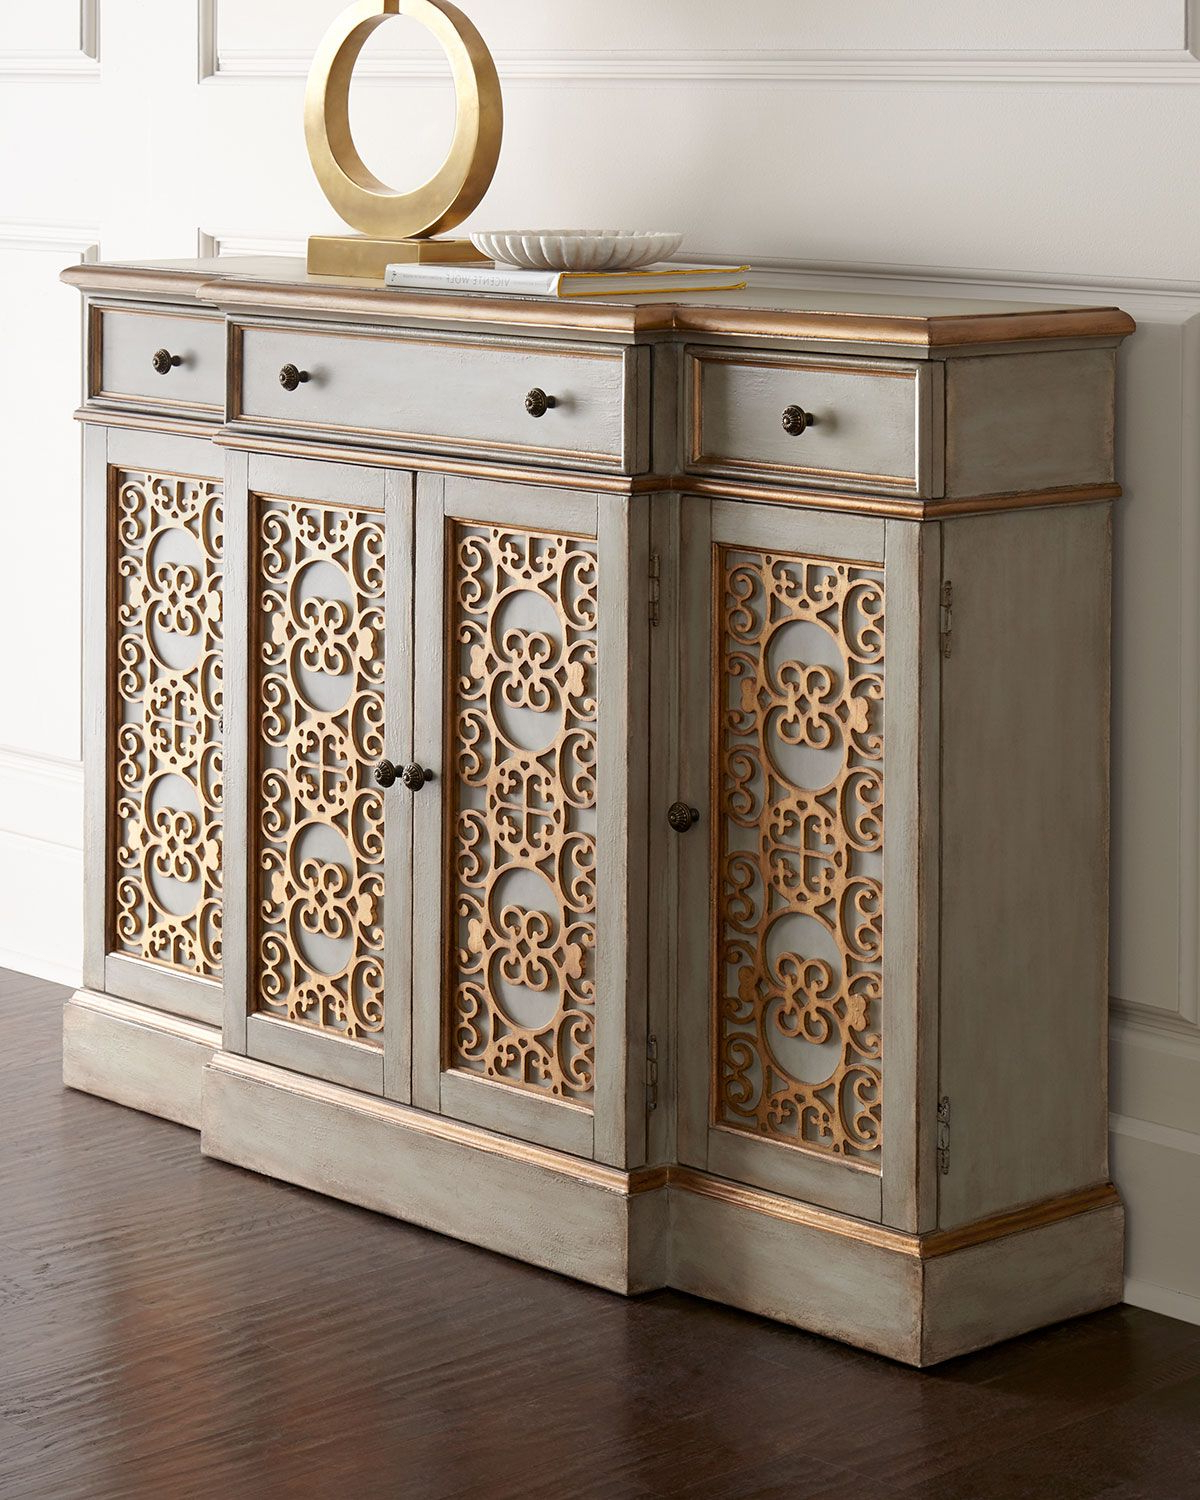 Sideboard Features Intricate Doors Adorned With Scrolled Throughout Stillwater Sideboards (View 8 of 20)